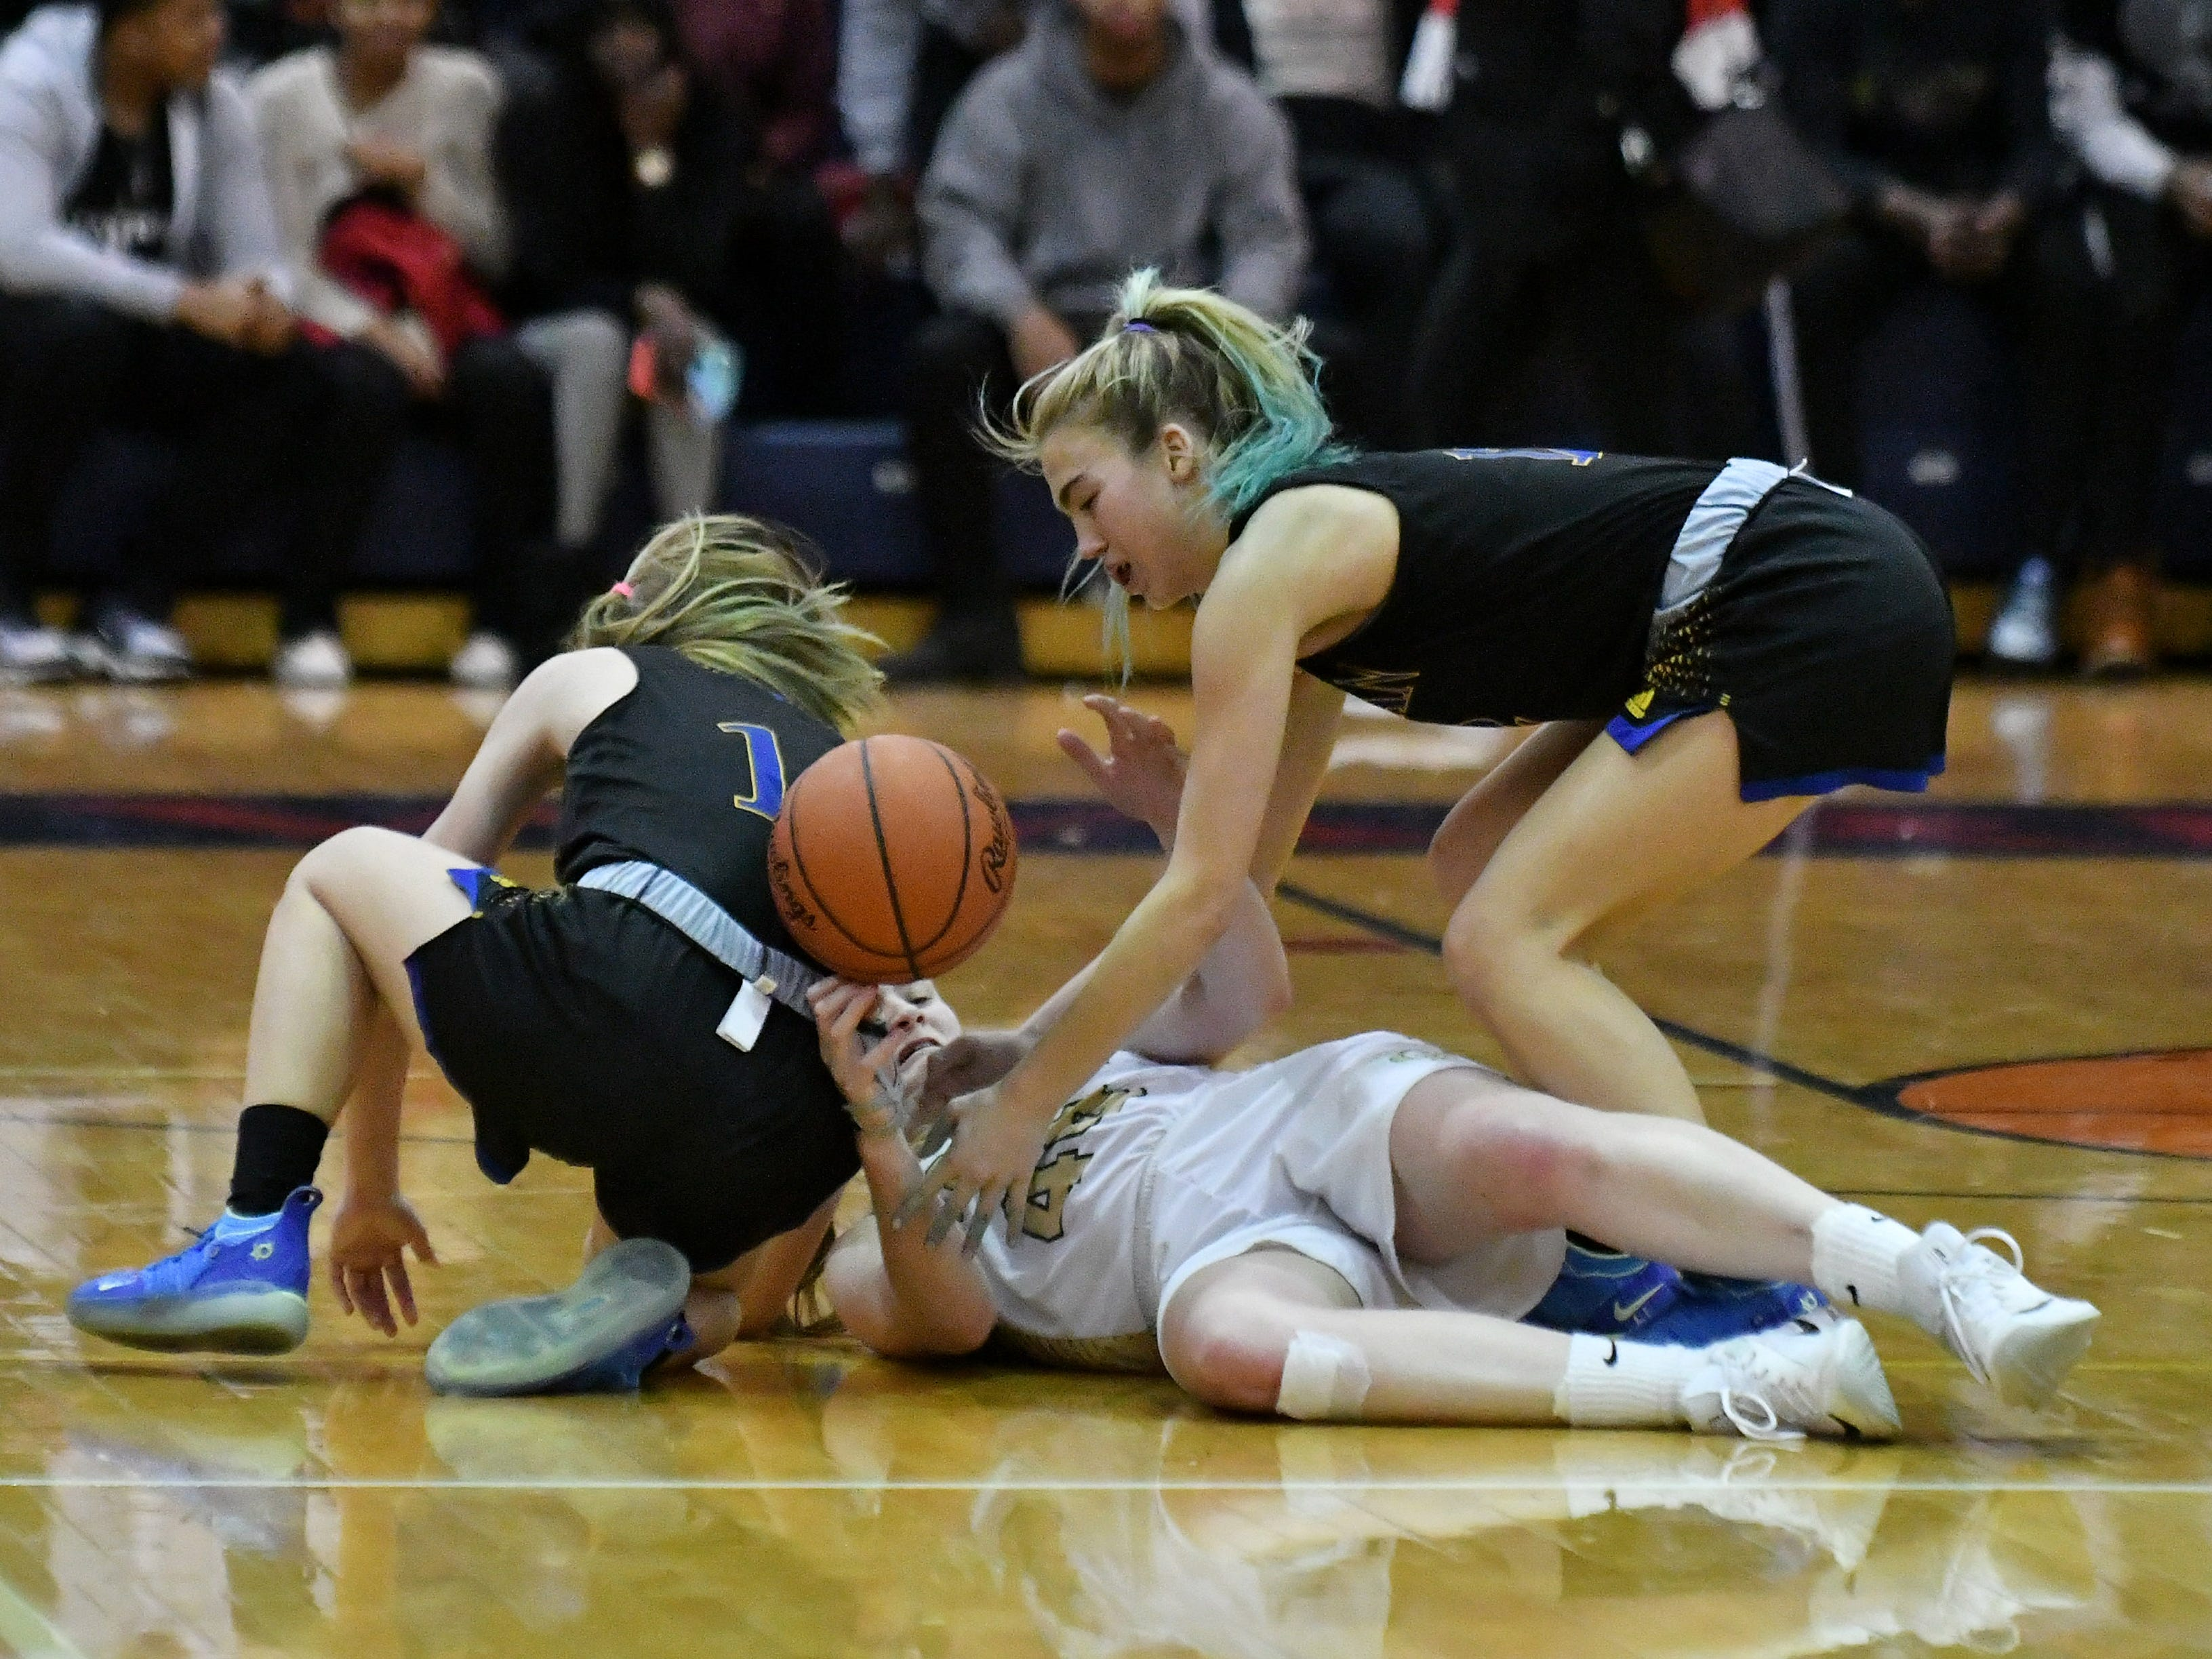 Marian's Olivia Moore, right, and Grace Rotter, left, get the ball from Grosse Pointe North's Julia Ayrault in the second half.